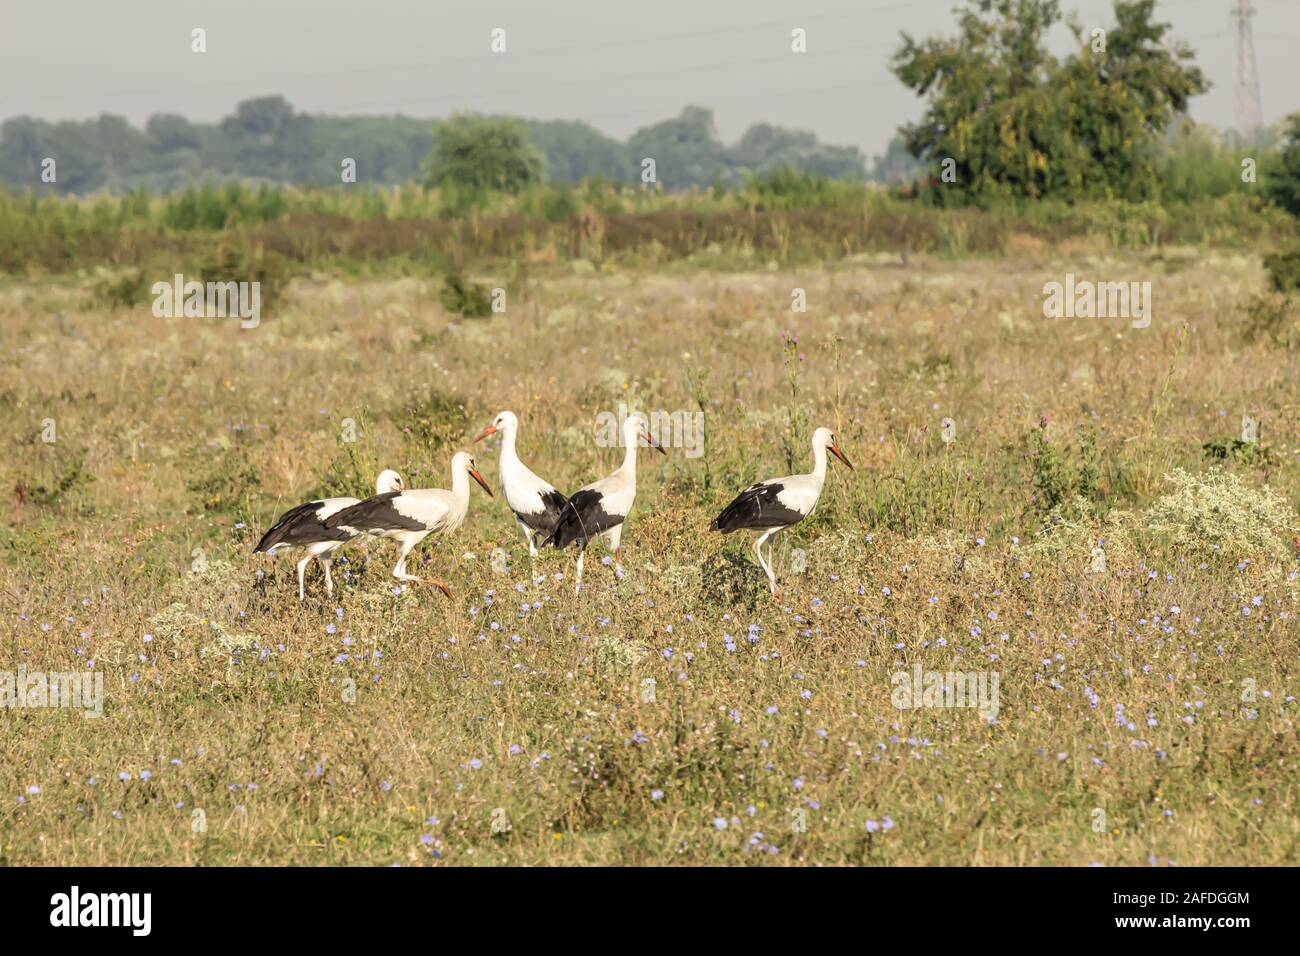 White stork, Ciconia ciconia, large bird, stork family Ciconiidae. Its plumage is mainly white, with black on its wings. Animalia, Chordata, Aves, Cic Stock Photo